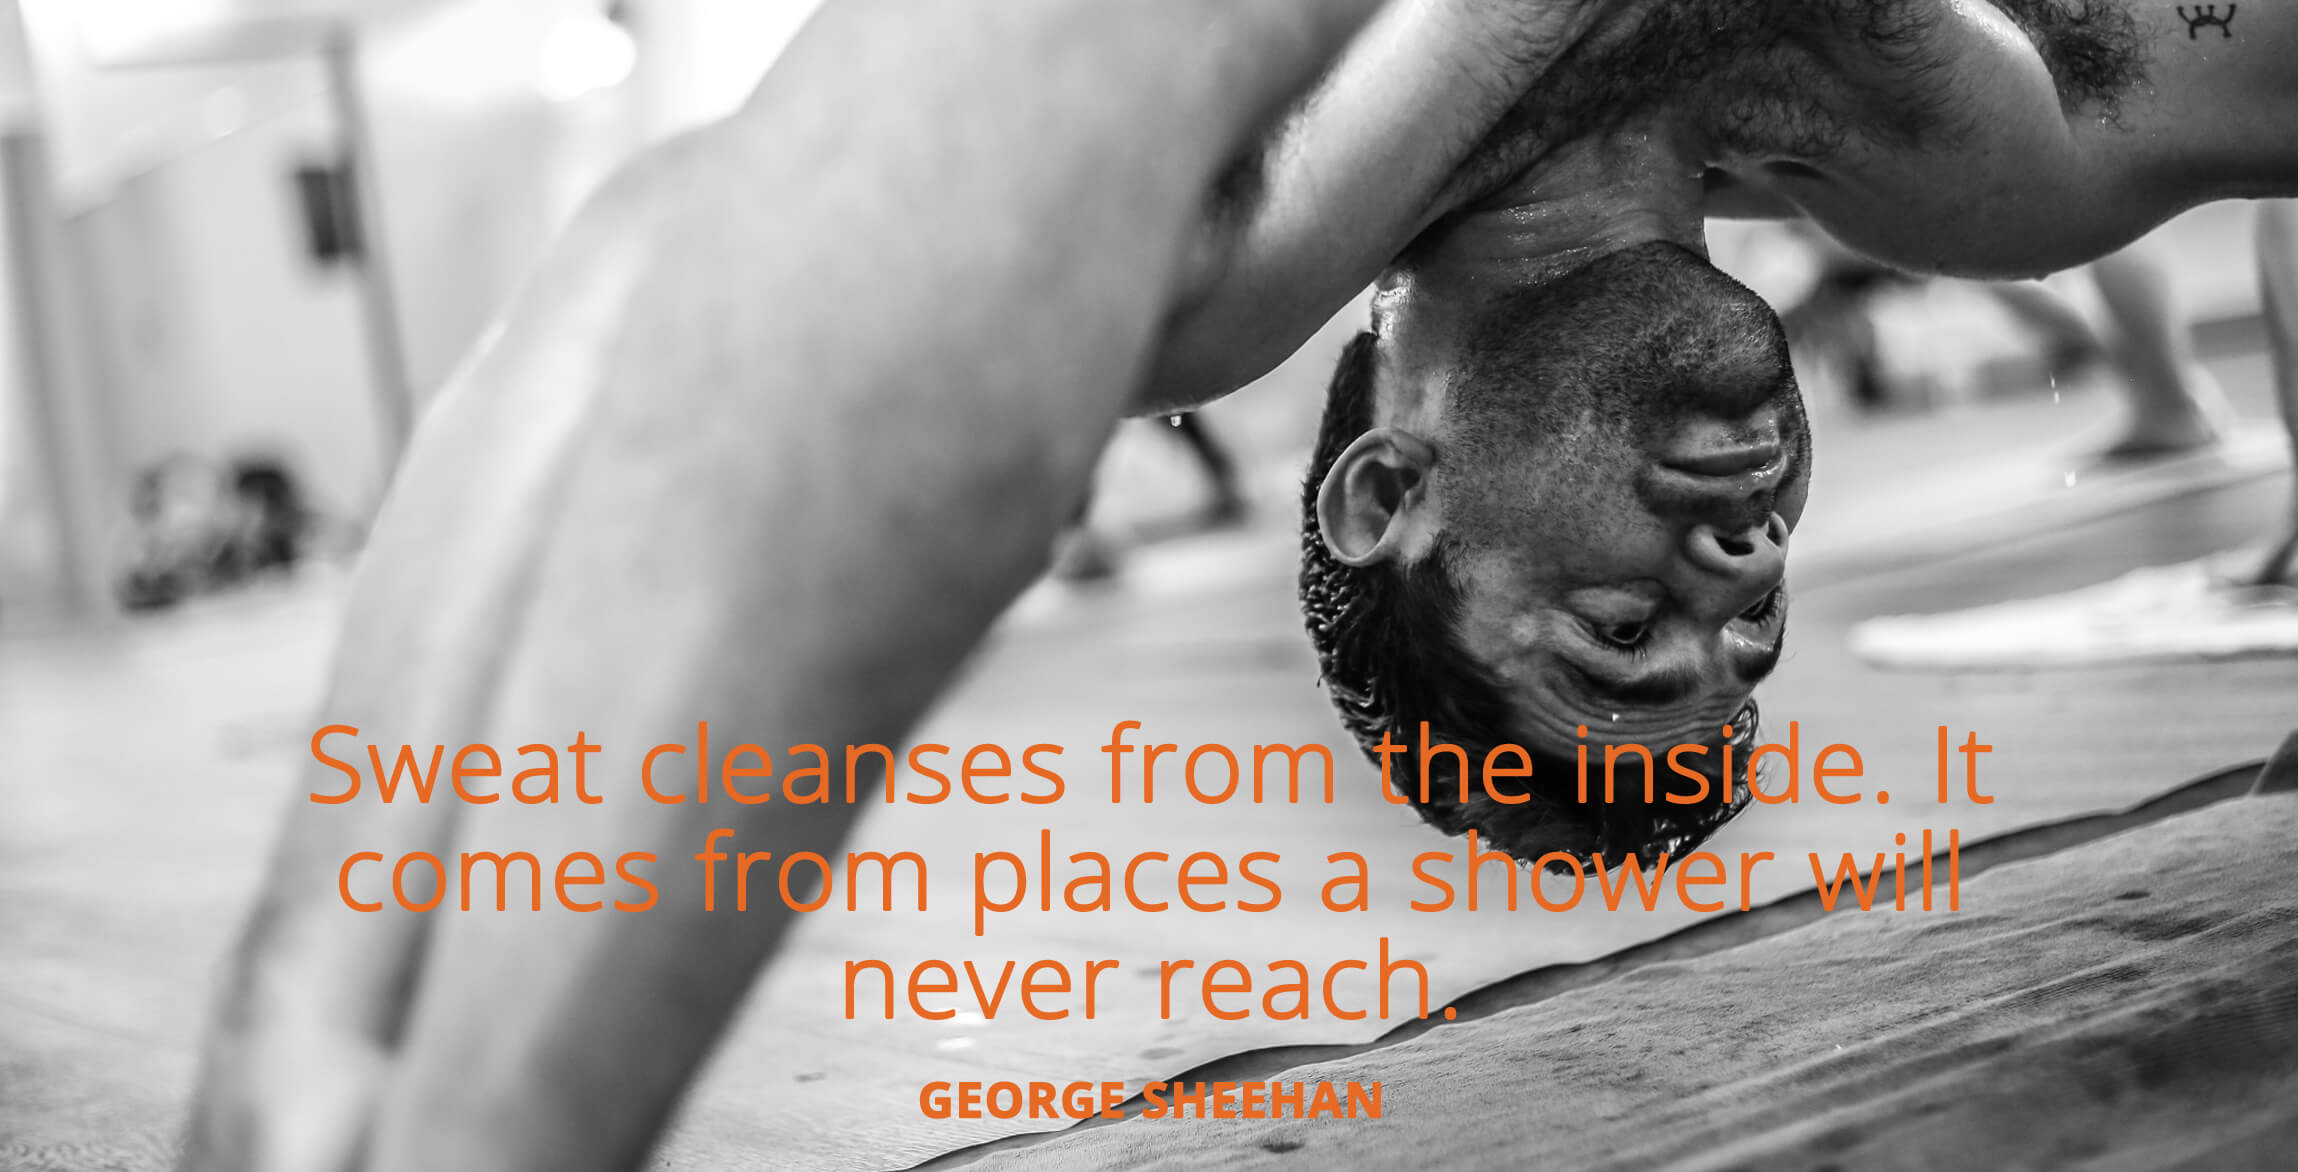 Sweat cleanses from the inside. It comes from places a shower will never reach. George Sheehan